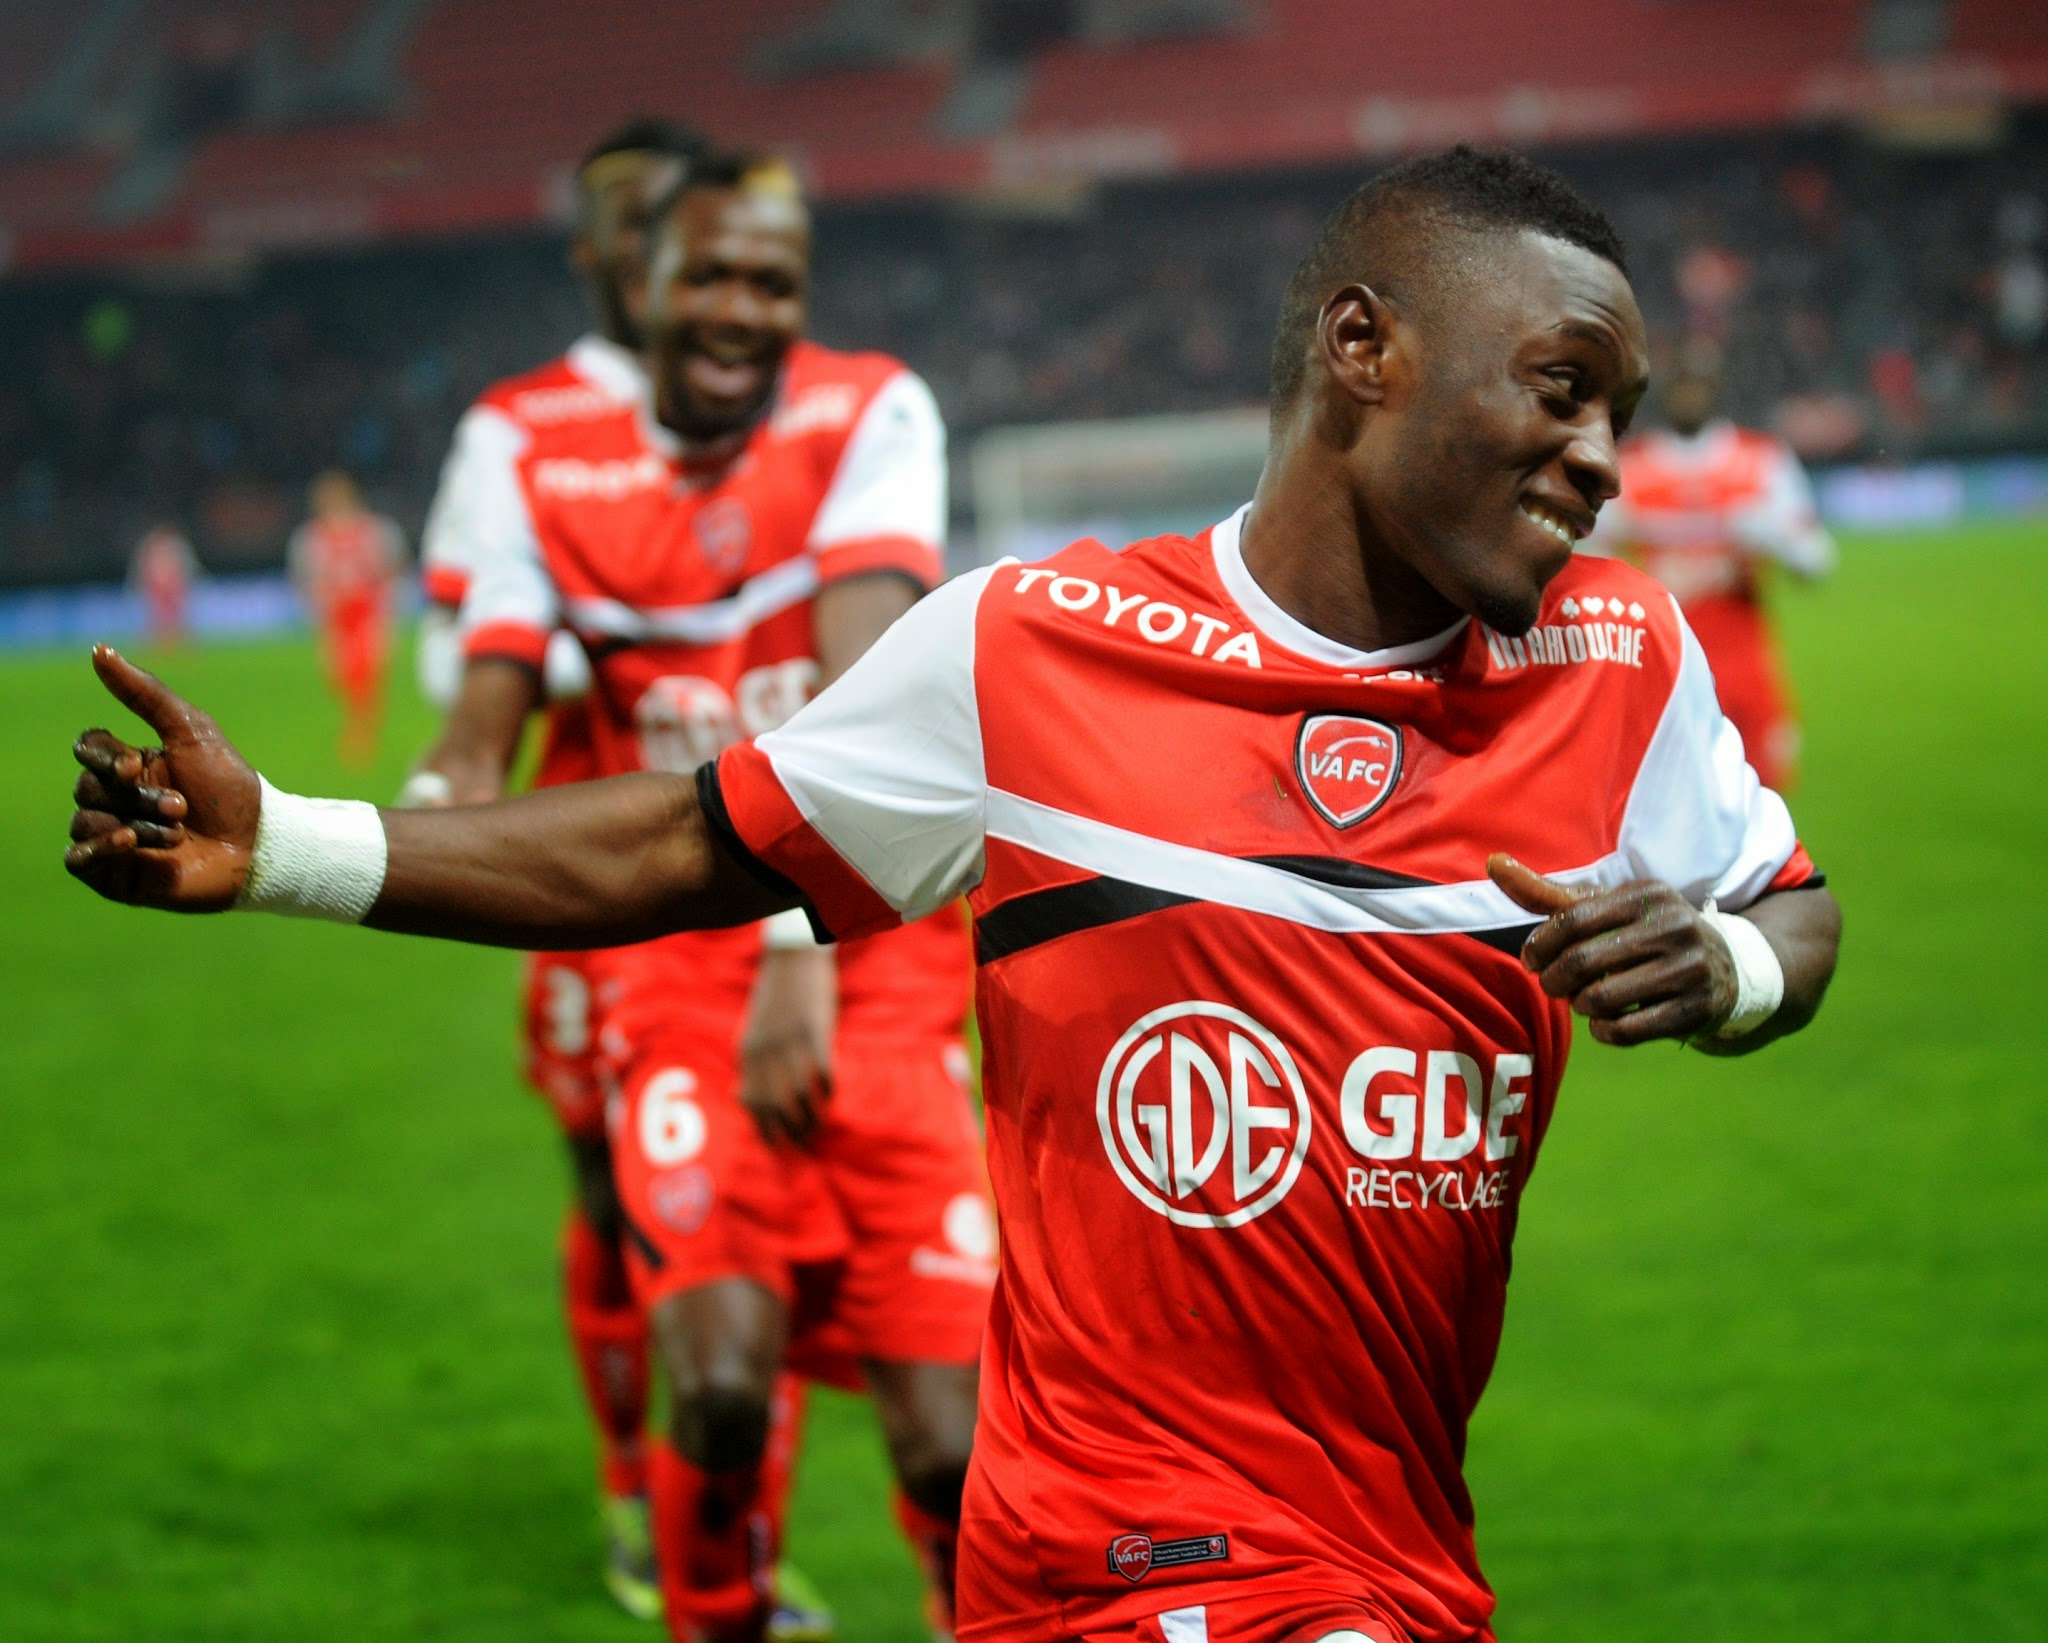 Match Valenciennes FC Nimes Olympique en direct live streaming